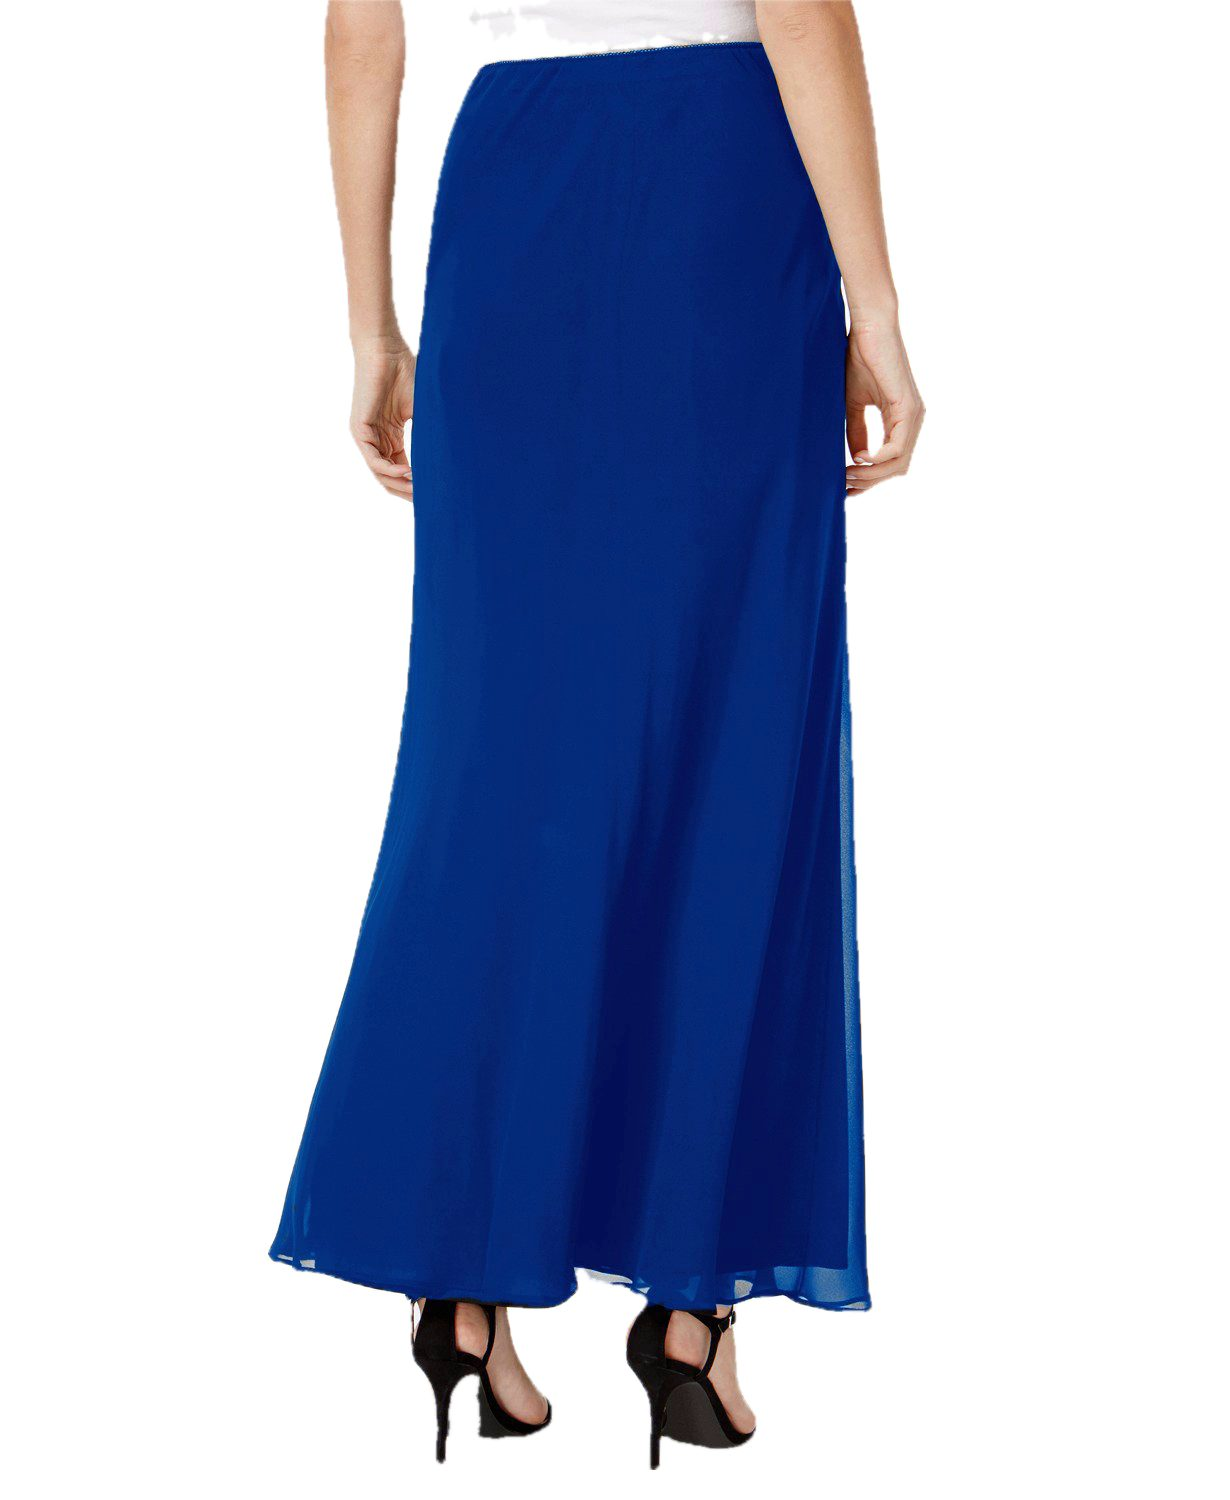 Ankle Length Flared Skirt in Turquoise Blue